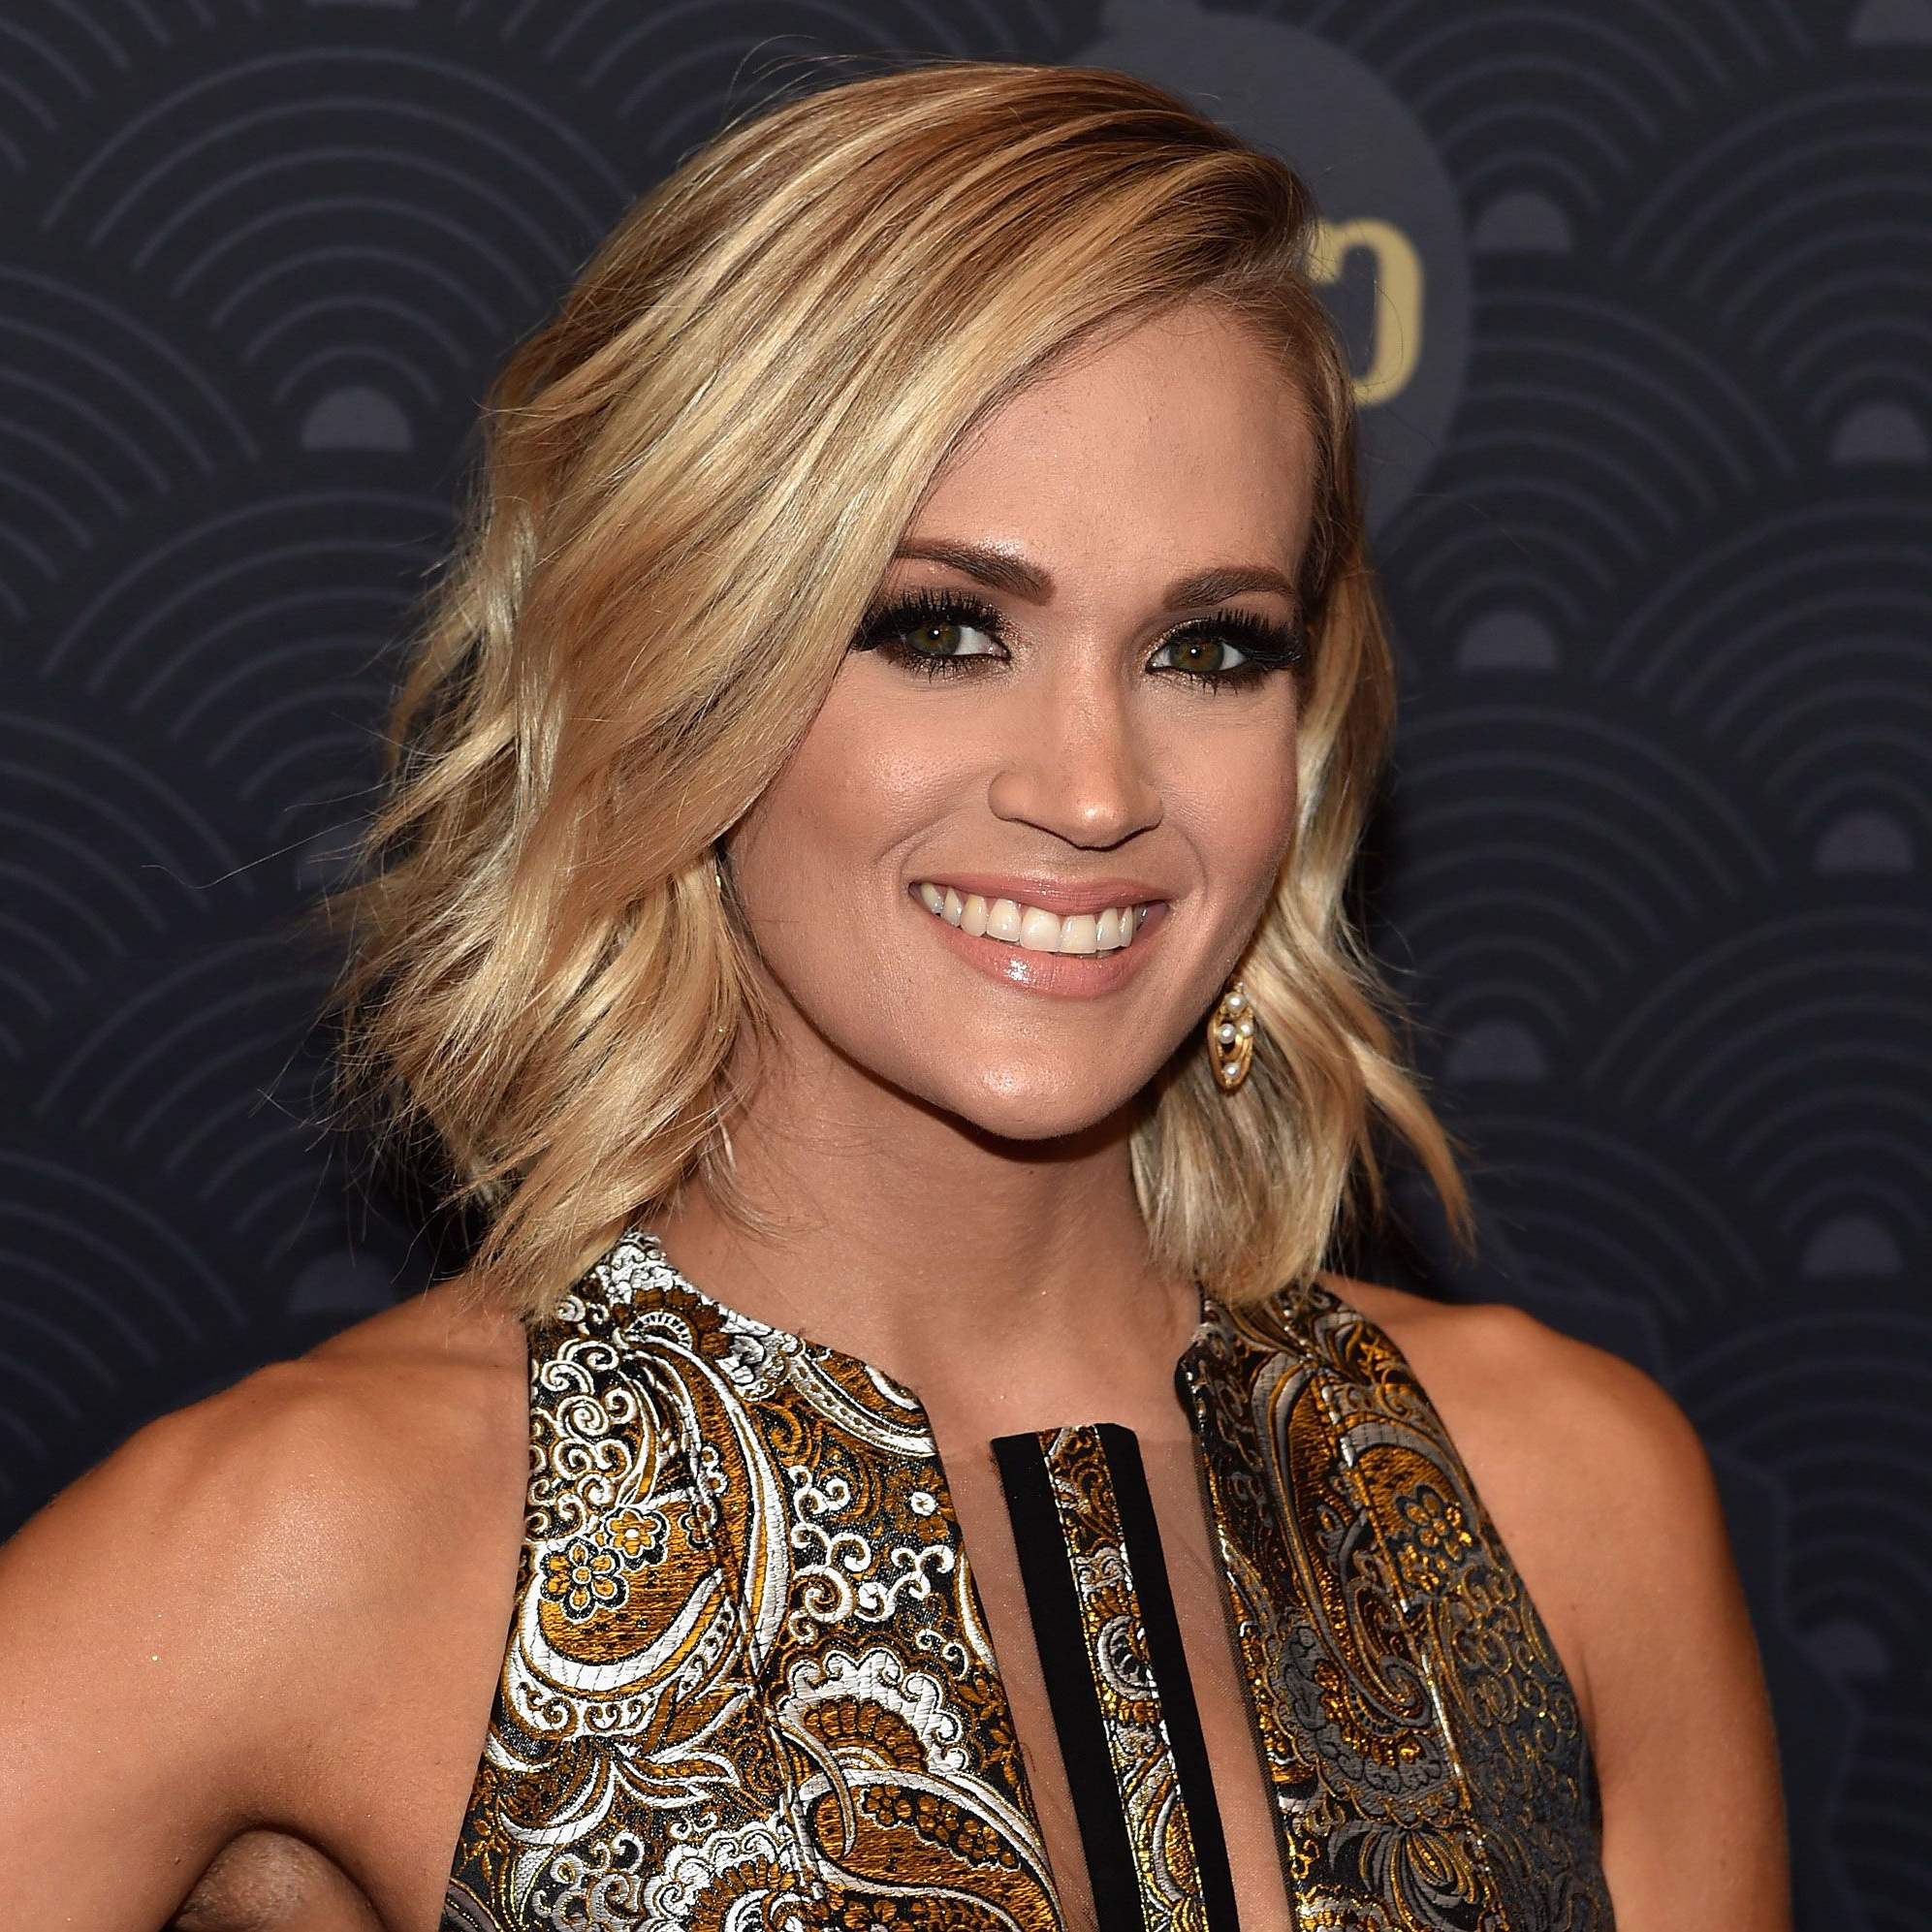 87 Cute Short Hairstyles—And How To Pull Them Off | Pinterest | Hair pertaining to Carrie Underwood Short Hairstyles